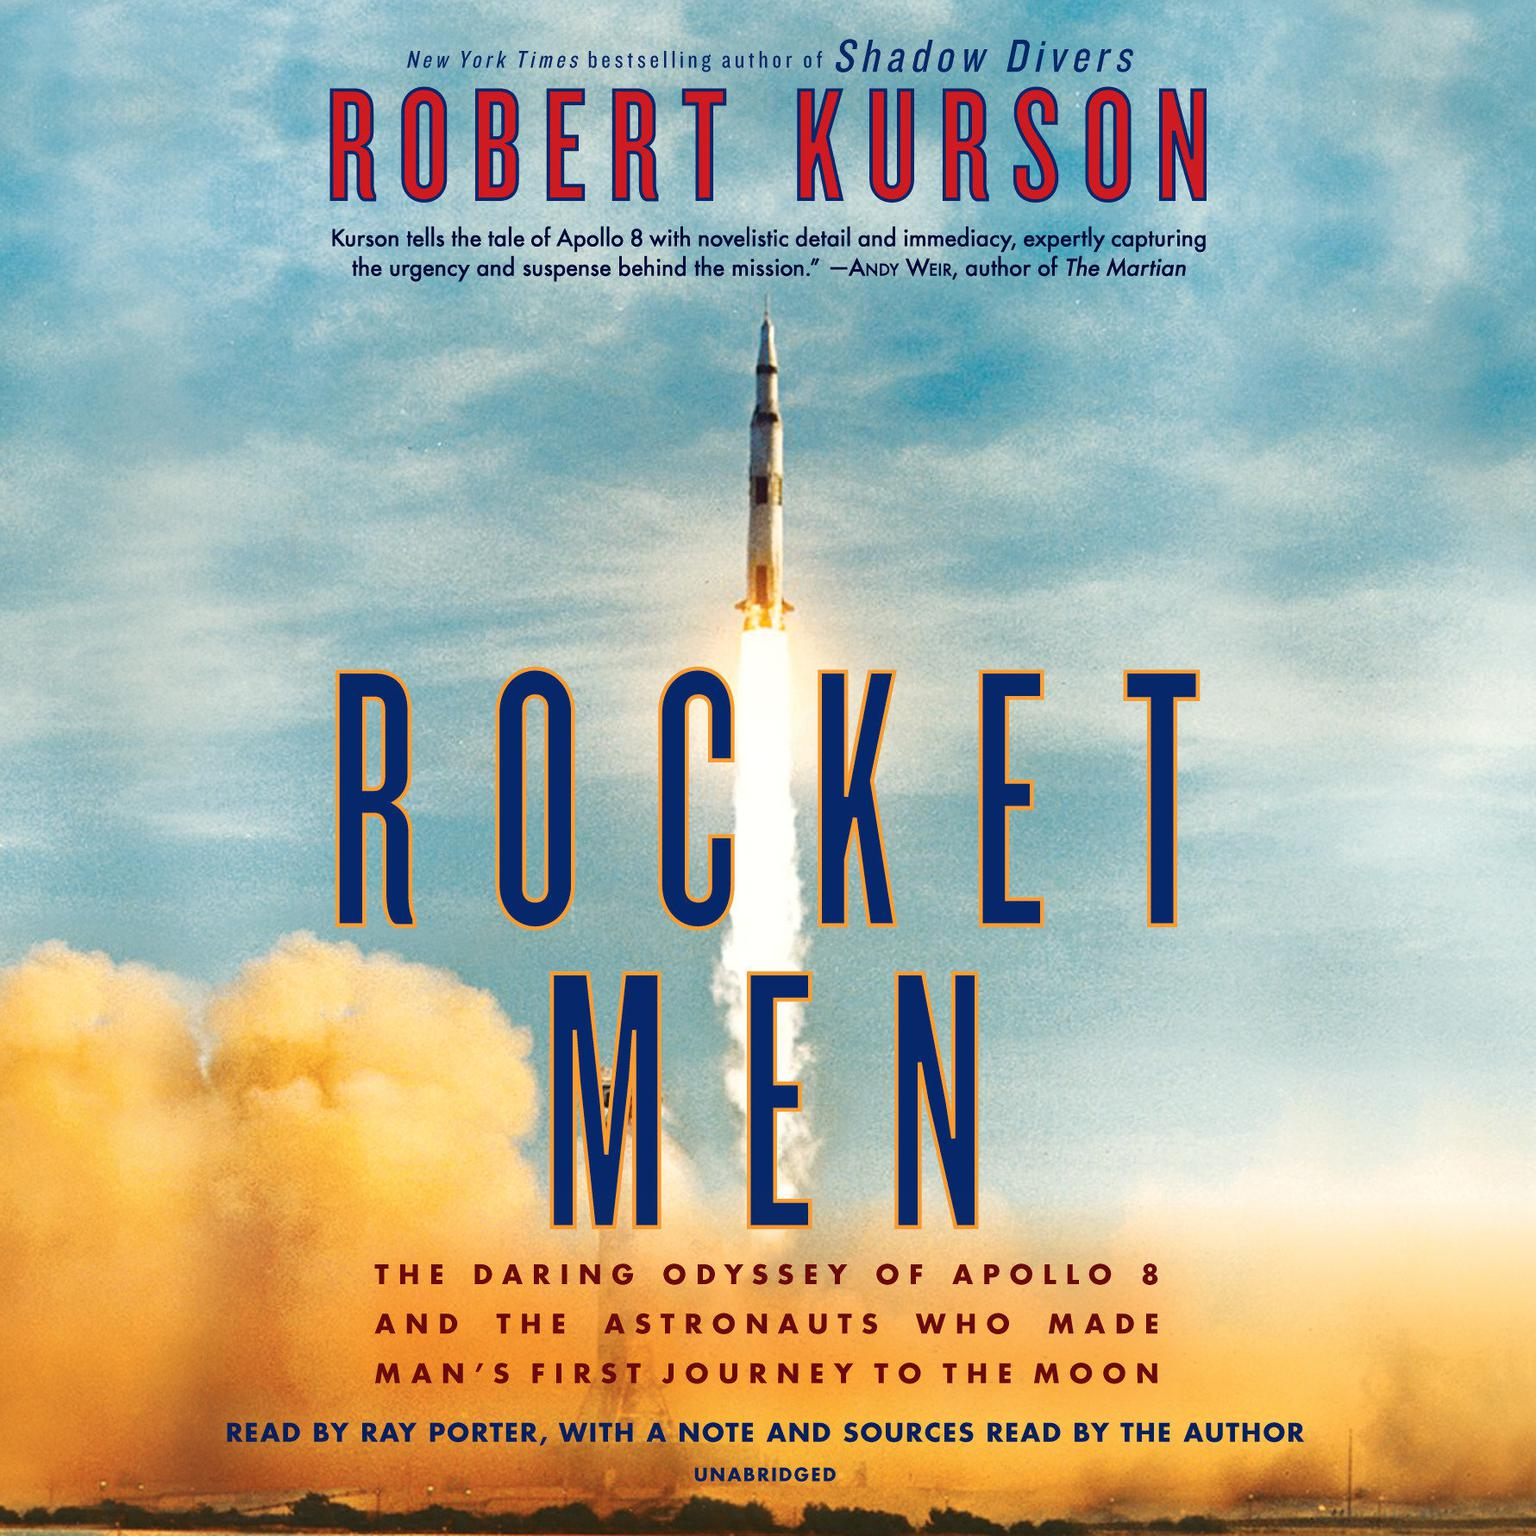 Rocket Men: The Daring Odyssey of Apollo 8 and the Astronauts Who Made Mans First Journey to the Moon Audiobook, by Robert Kurson